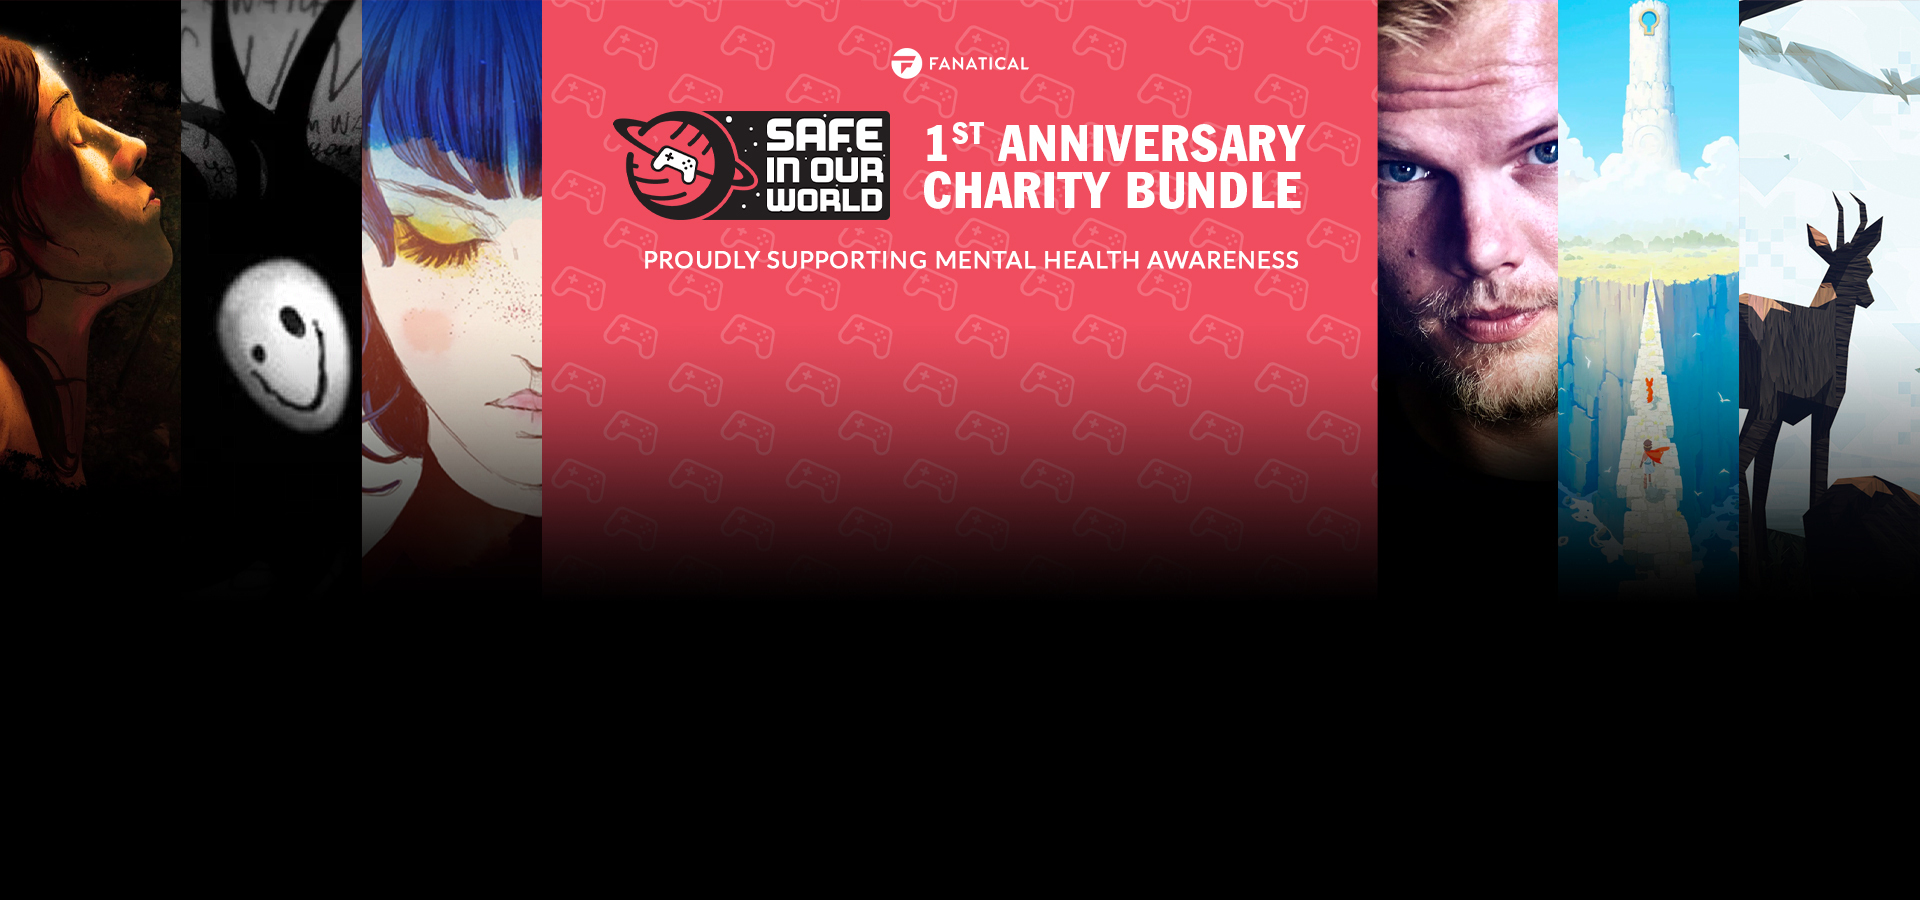 Safe in Our World 1st Anniversary Charity Bundle